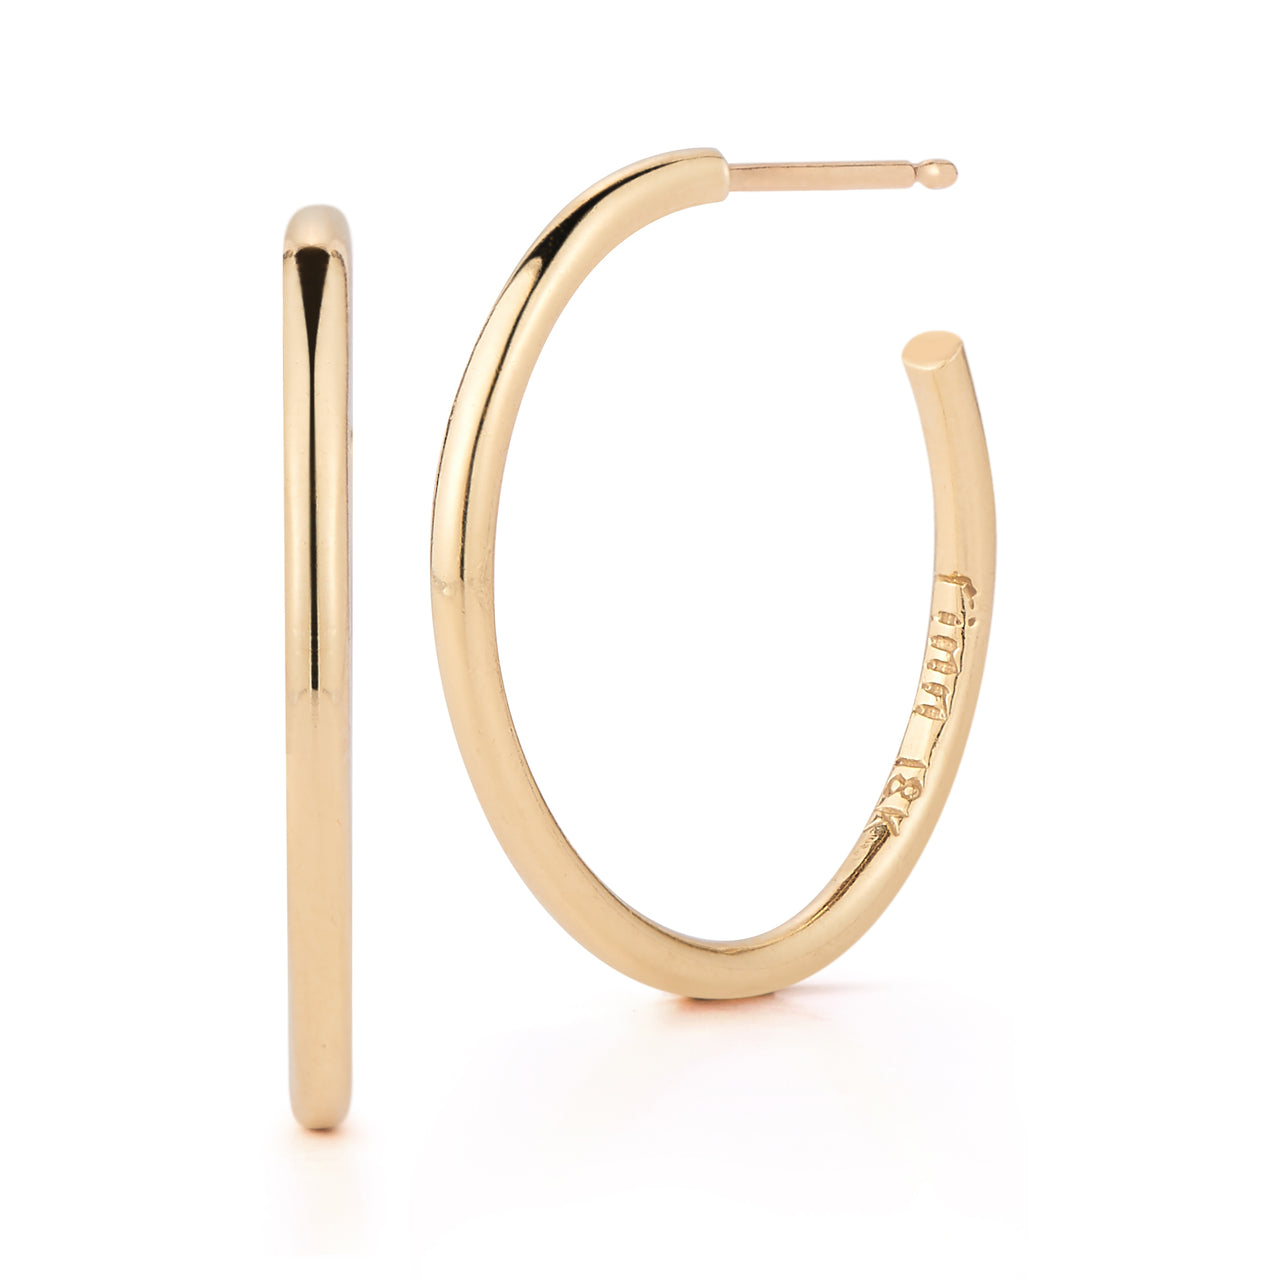 solid and lightweight day to night 18k gold hoop earrings by finn by candice pool neistat